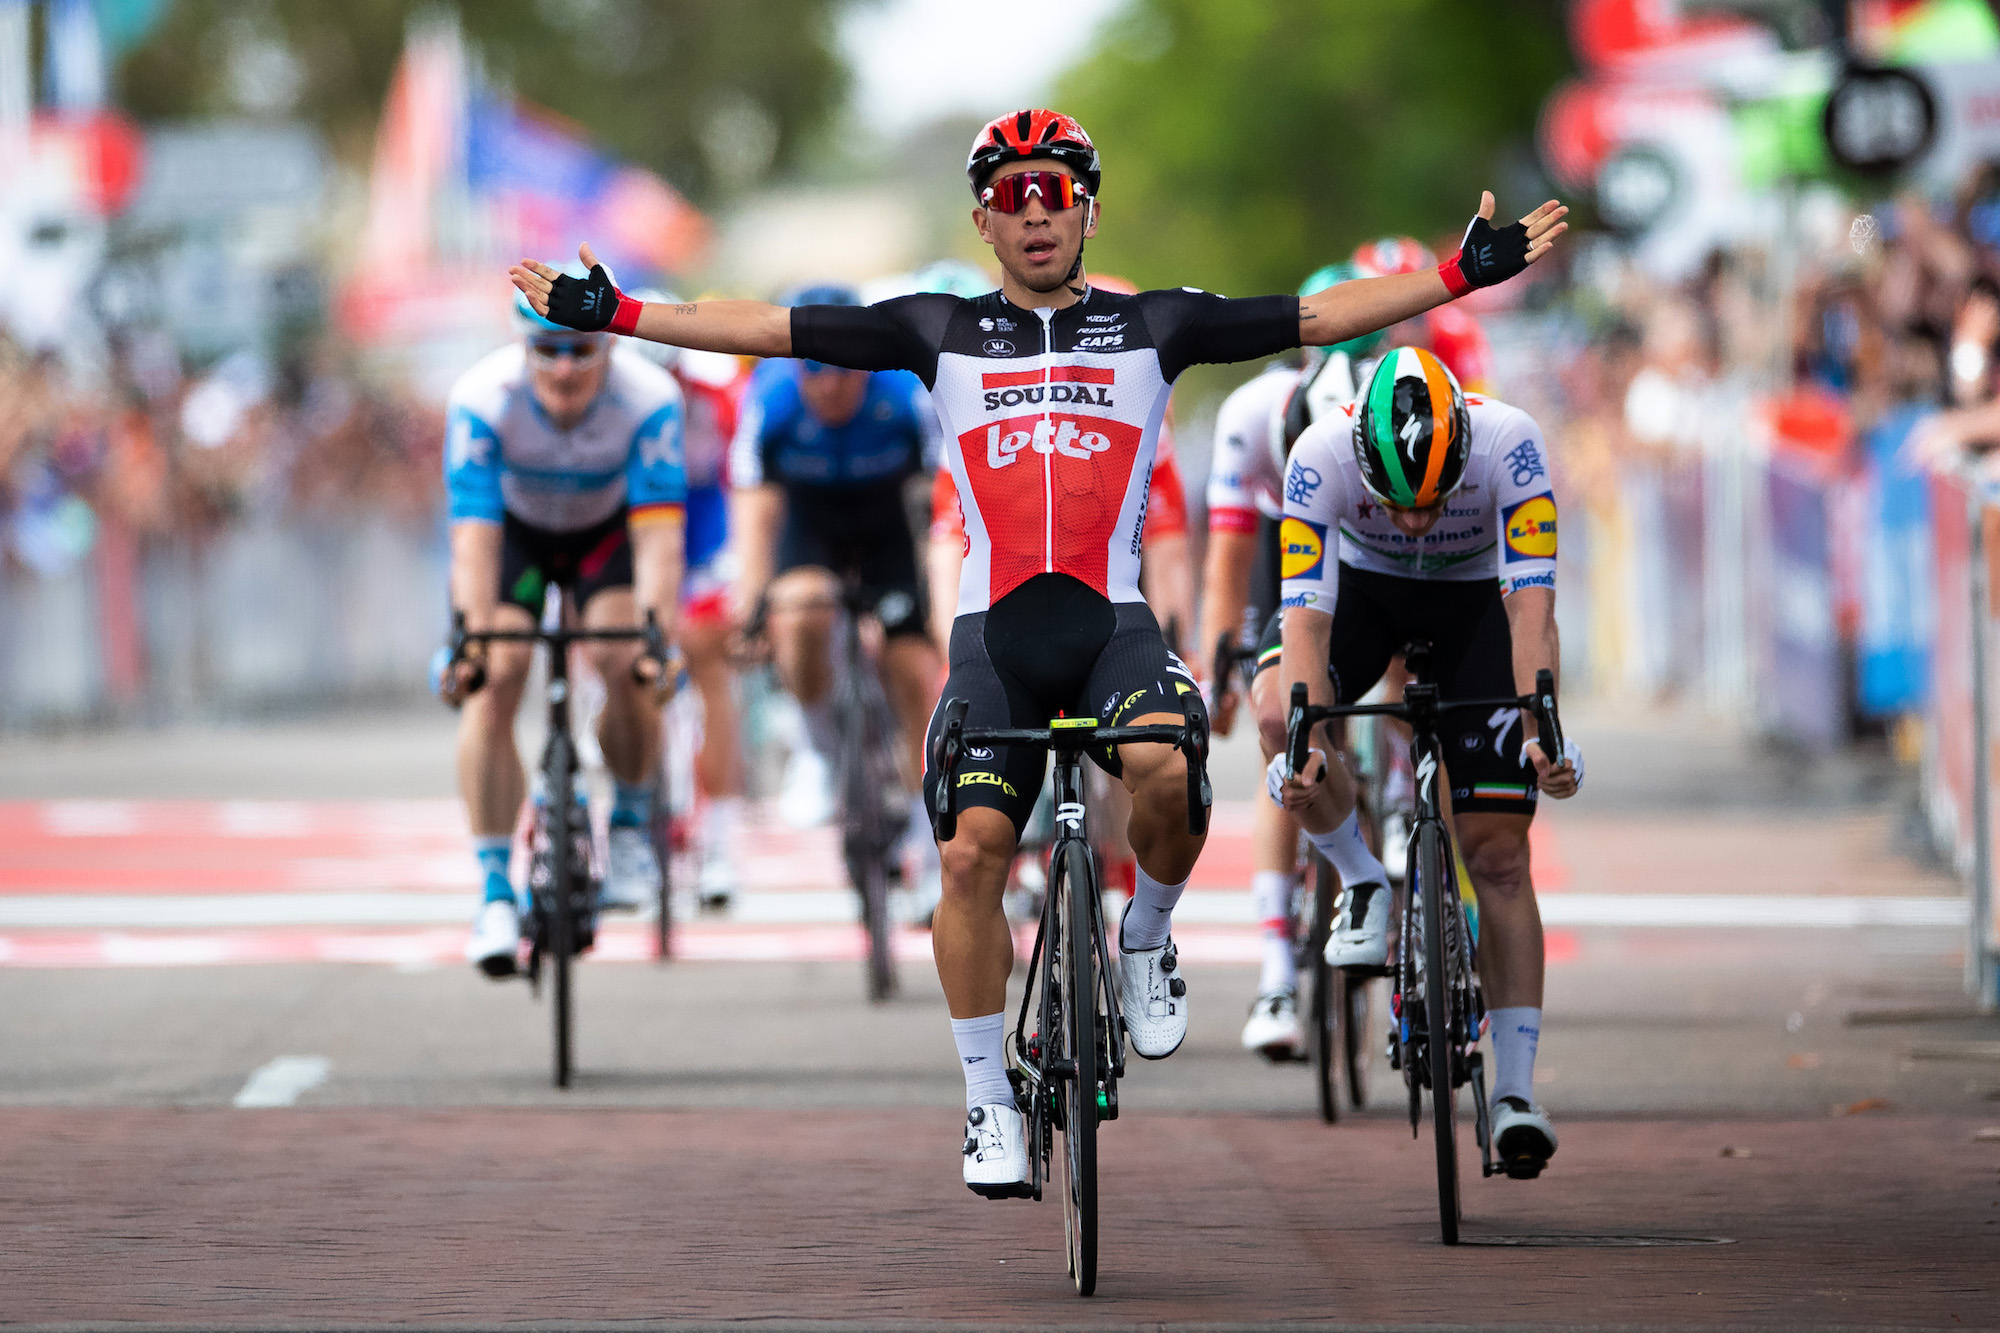 Caleb Ewan tears past Sam Bennett to take hectic stage four of Tour Down Under 2020